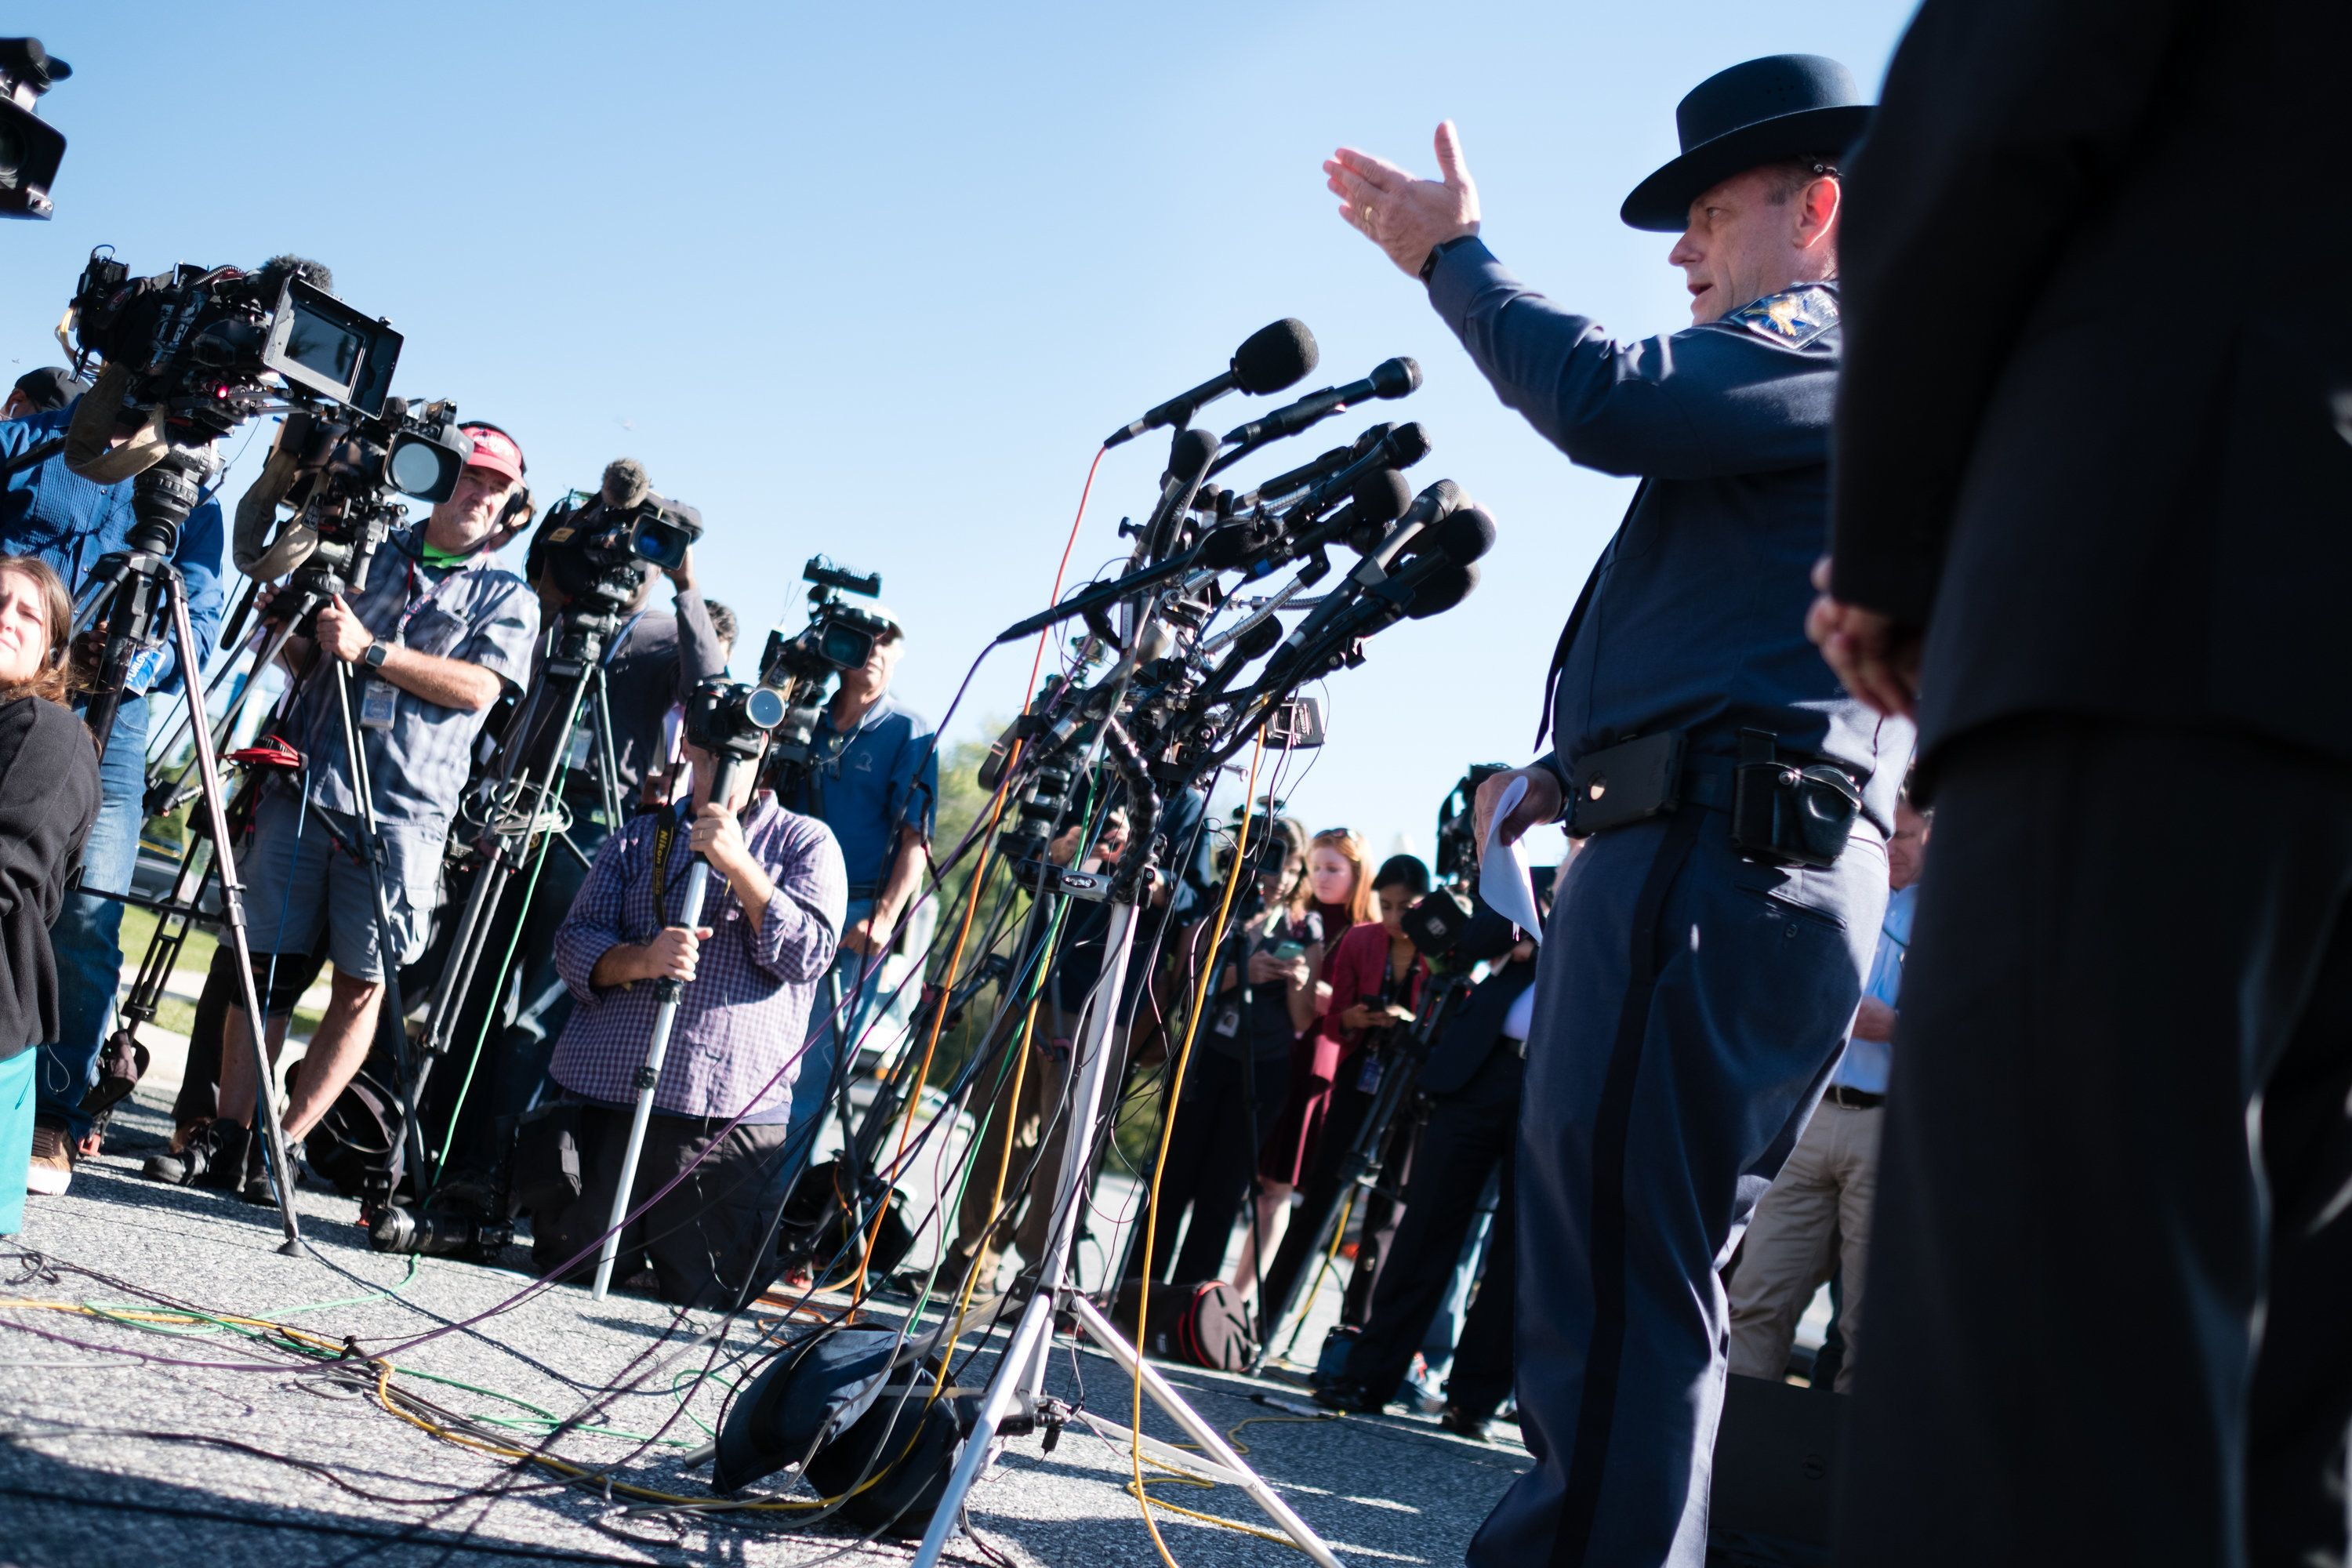 EDGEWOOD, MD - OCTOBER 18:  Jeffrey R. Gahler, Sheriff, Harford County, Maryland speaks to the media at a 2pm press conference. A gunman opened fire at an Edgewood Maryland office park on Wednesday morning, October 18, 2017, killing three co-workers and wounding two others. Harford County Sheriff Jeffrey Gahler identified the shooter as 37-year-old Radee Labeeb Prince. He said Prince opened fire with a handgun and then fled the Emmorton Business Park in Edgewood. (Photo by Sarah L. Voisin/The Washington Post via Getty Images)